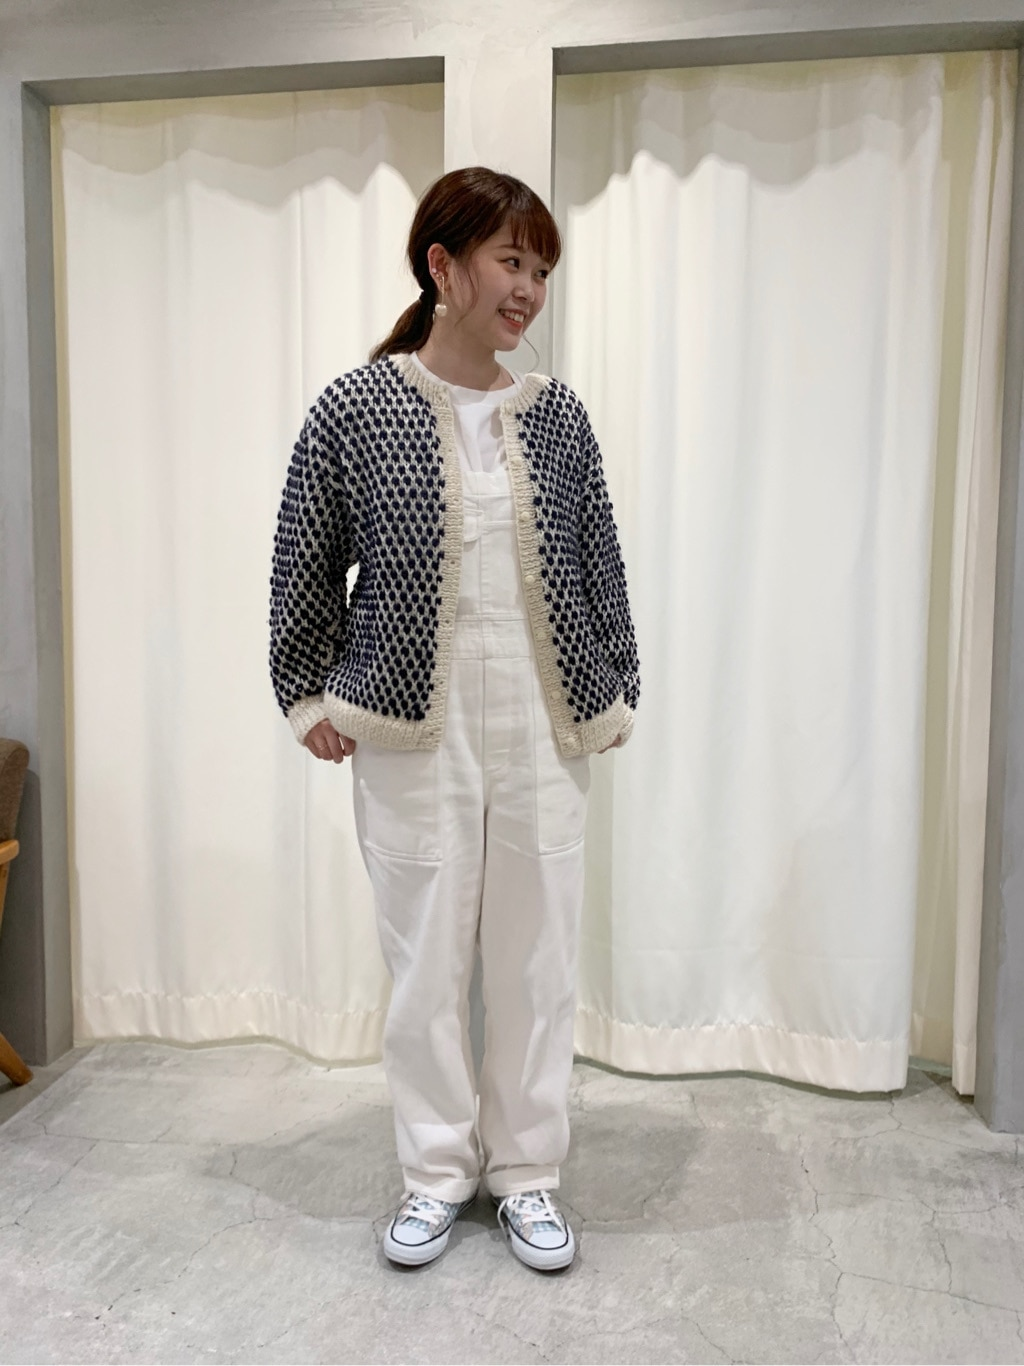 Dot and Stripes CHILD WOMAN 新宿ミロード 身長:157cm 2020.09.30